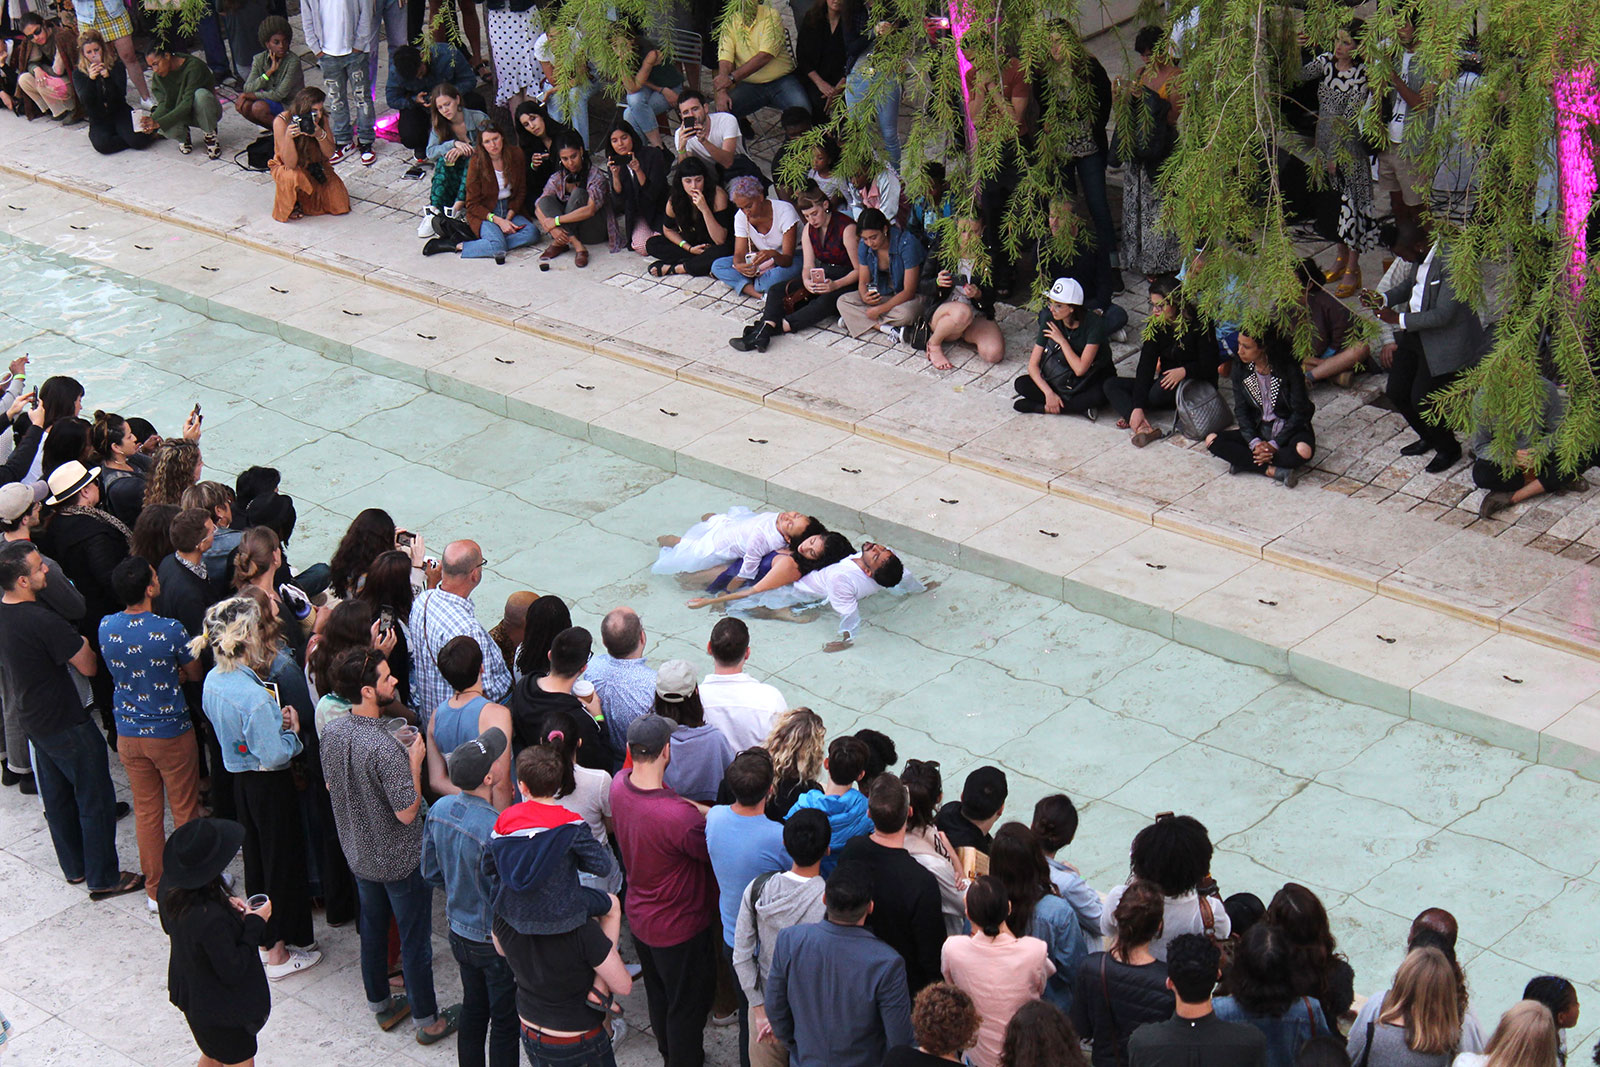 Overhead view of three dancers lying together, bodies touching, in a shallow reflecting pool